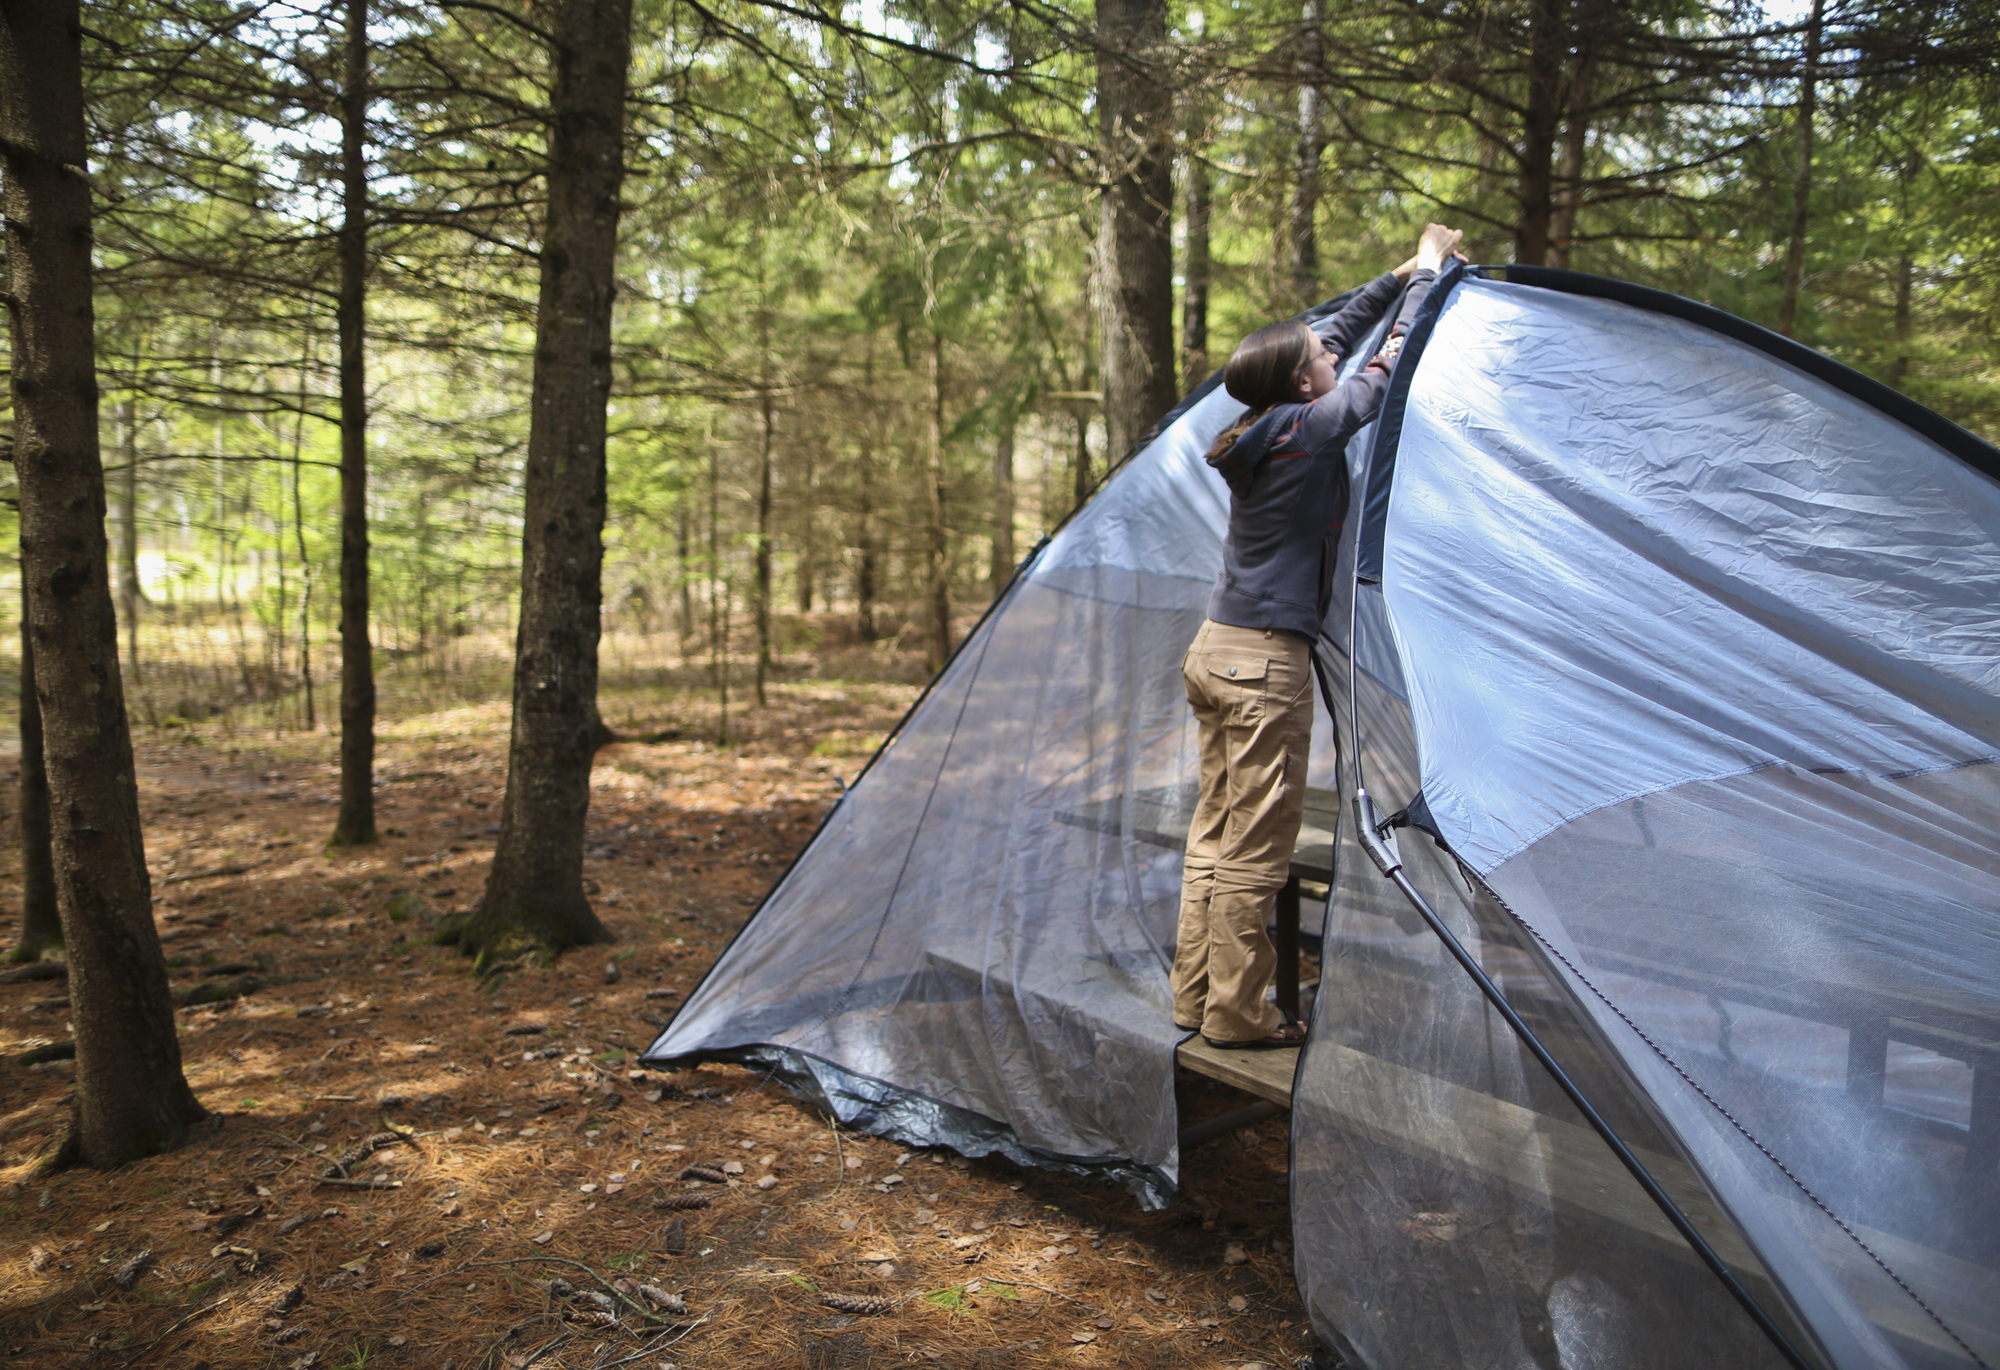 Mi Dnr Reservations for Your Best Recreation Strategic Planning: Mi Dnr Reservations | Mi Campgrounds | Michigan State Parks List